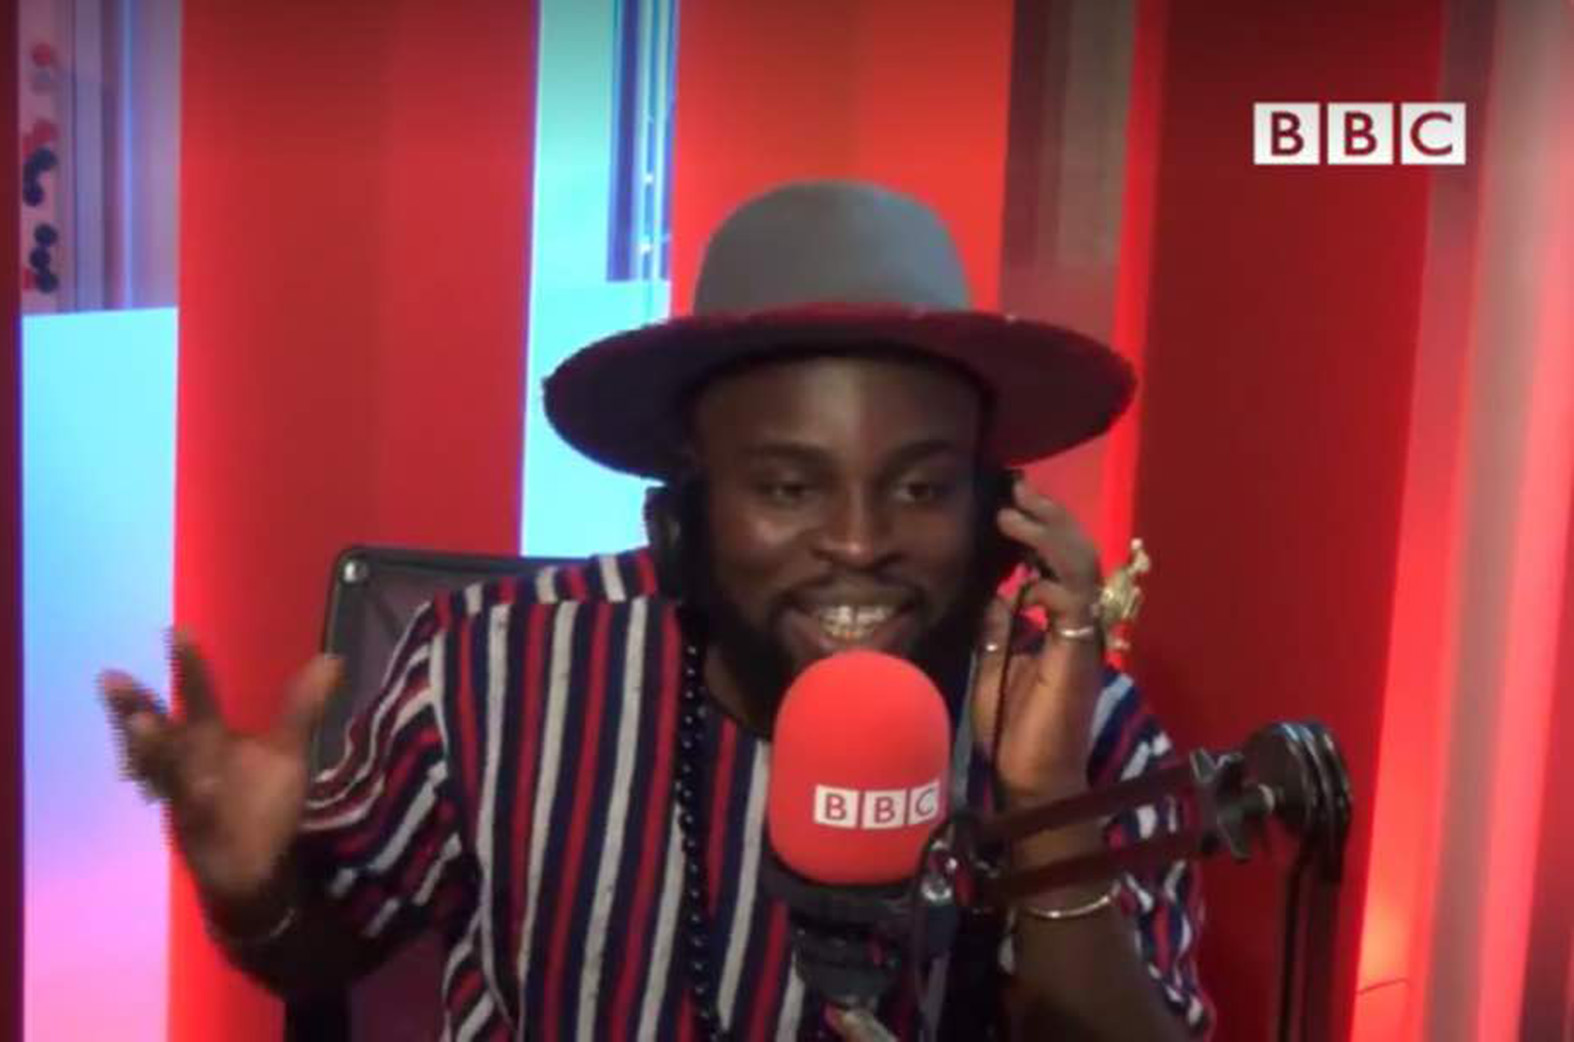 BBC grills godMC, M.anifest, on music, fashion and sexism